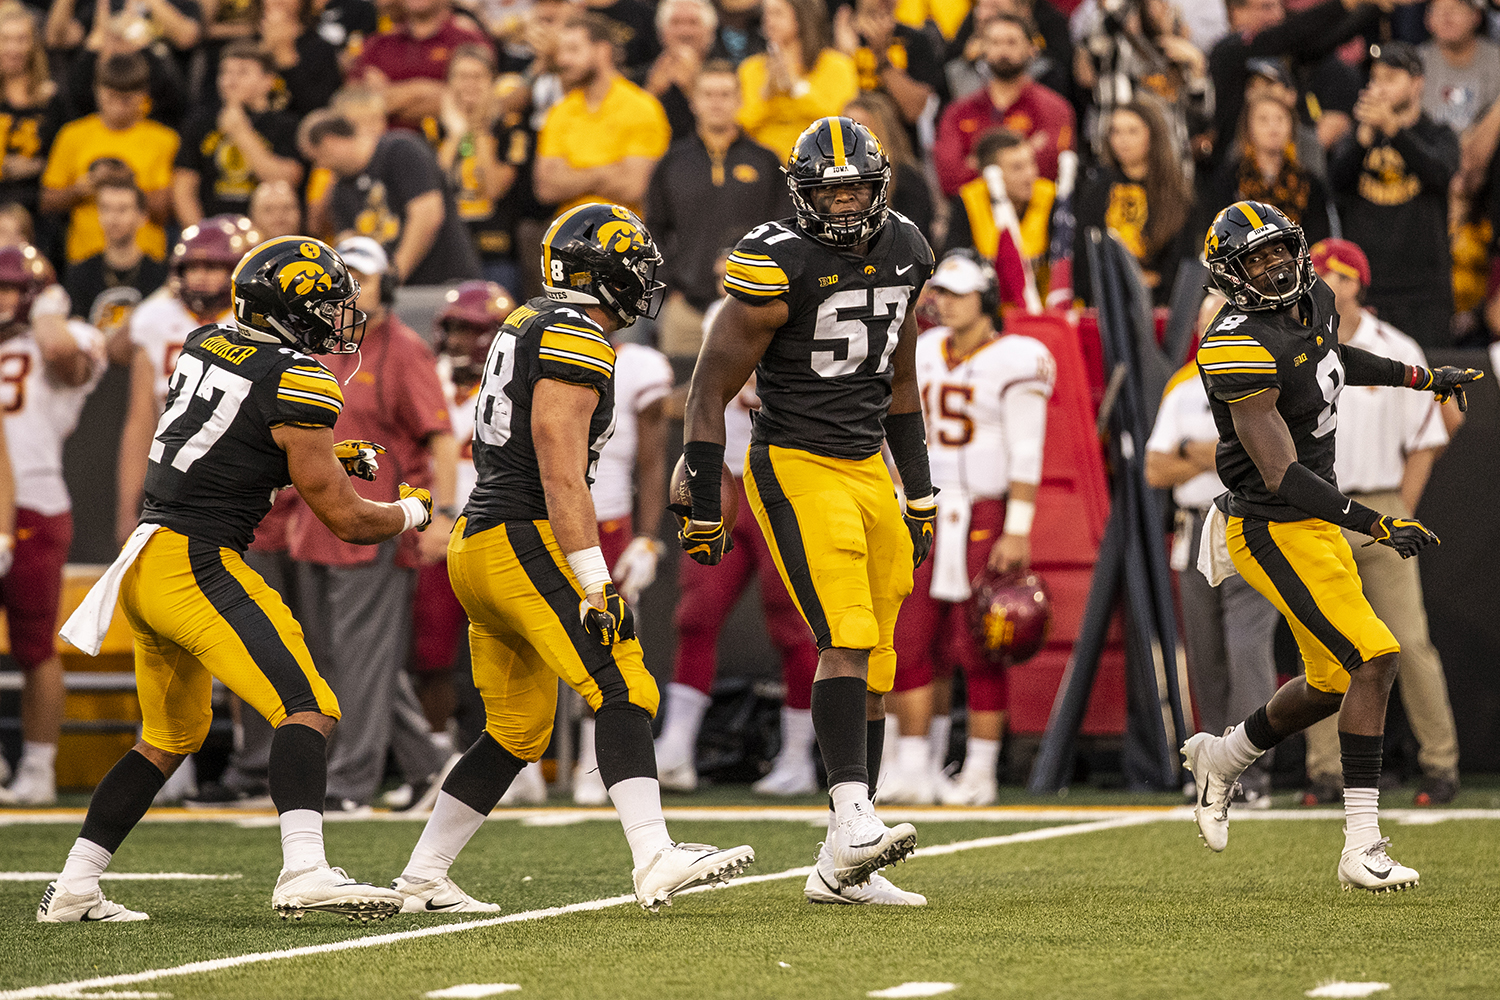 Iowa defensive players celebrate a stop during Iowa's game against Iowa State at Kinnick Stadium on Saturday, Sept. 8, 2018. The Hawkeyes defeated the Cyclones 13-3.